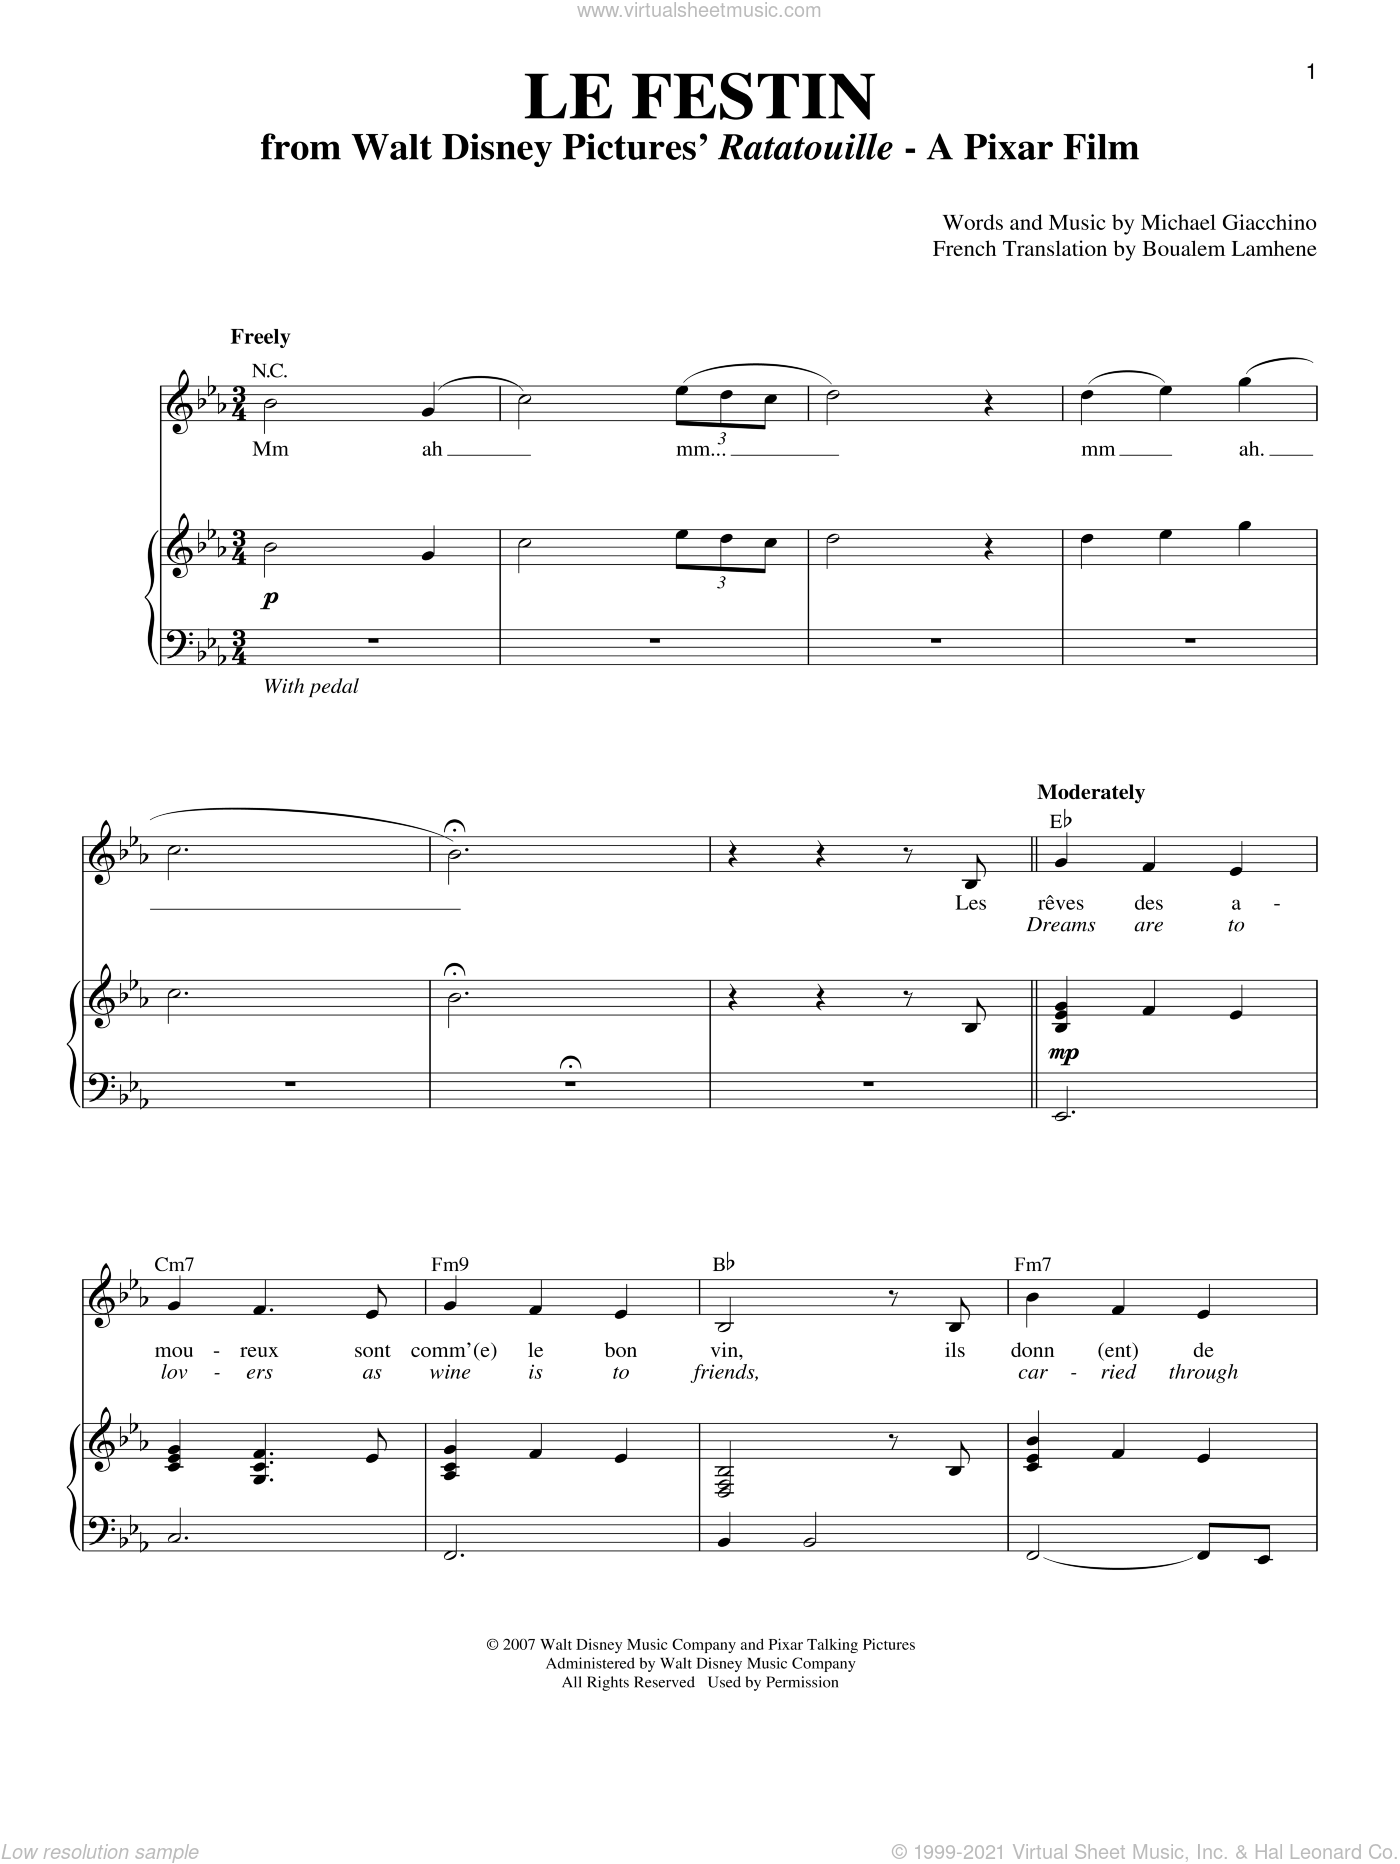 Le Festin sheet music for voice and piano by Michael Giacchino and Boualem Lamhene, intermediate skill level